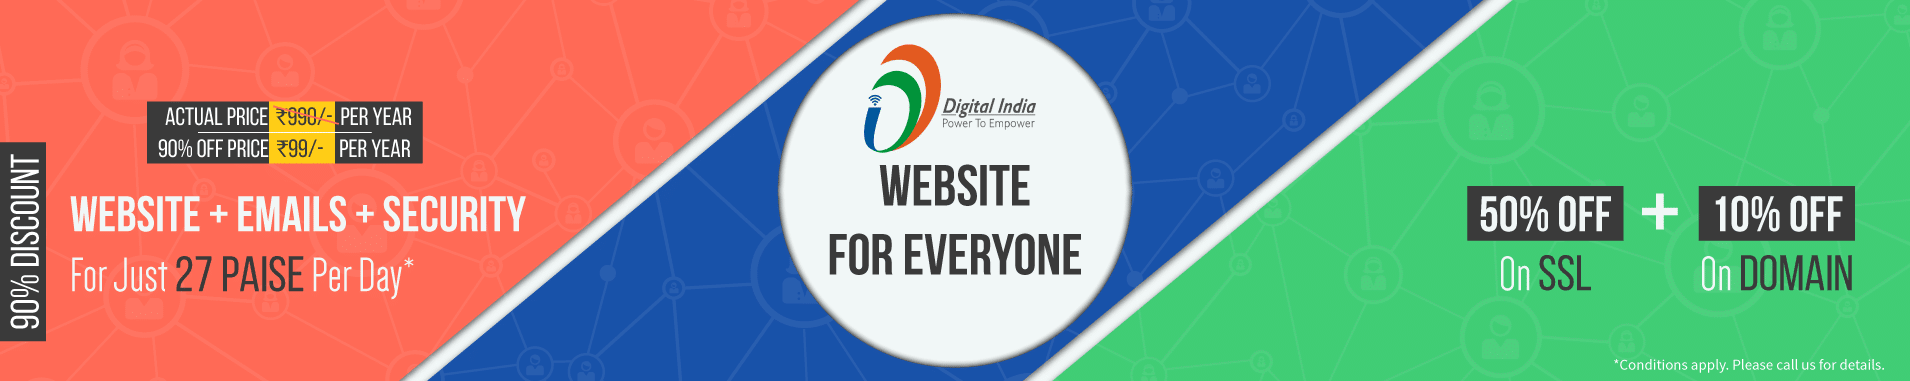 ServerCake India joins Digital Inida's Initiative Website for All